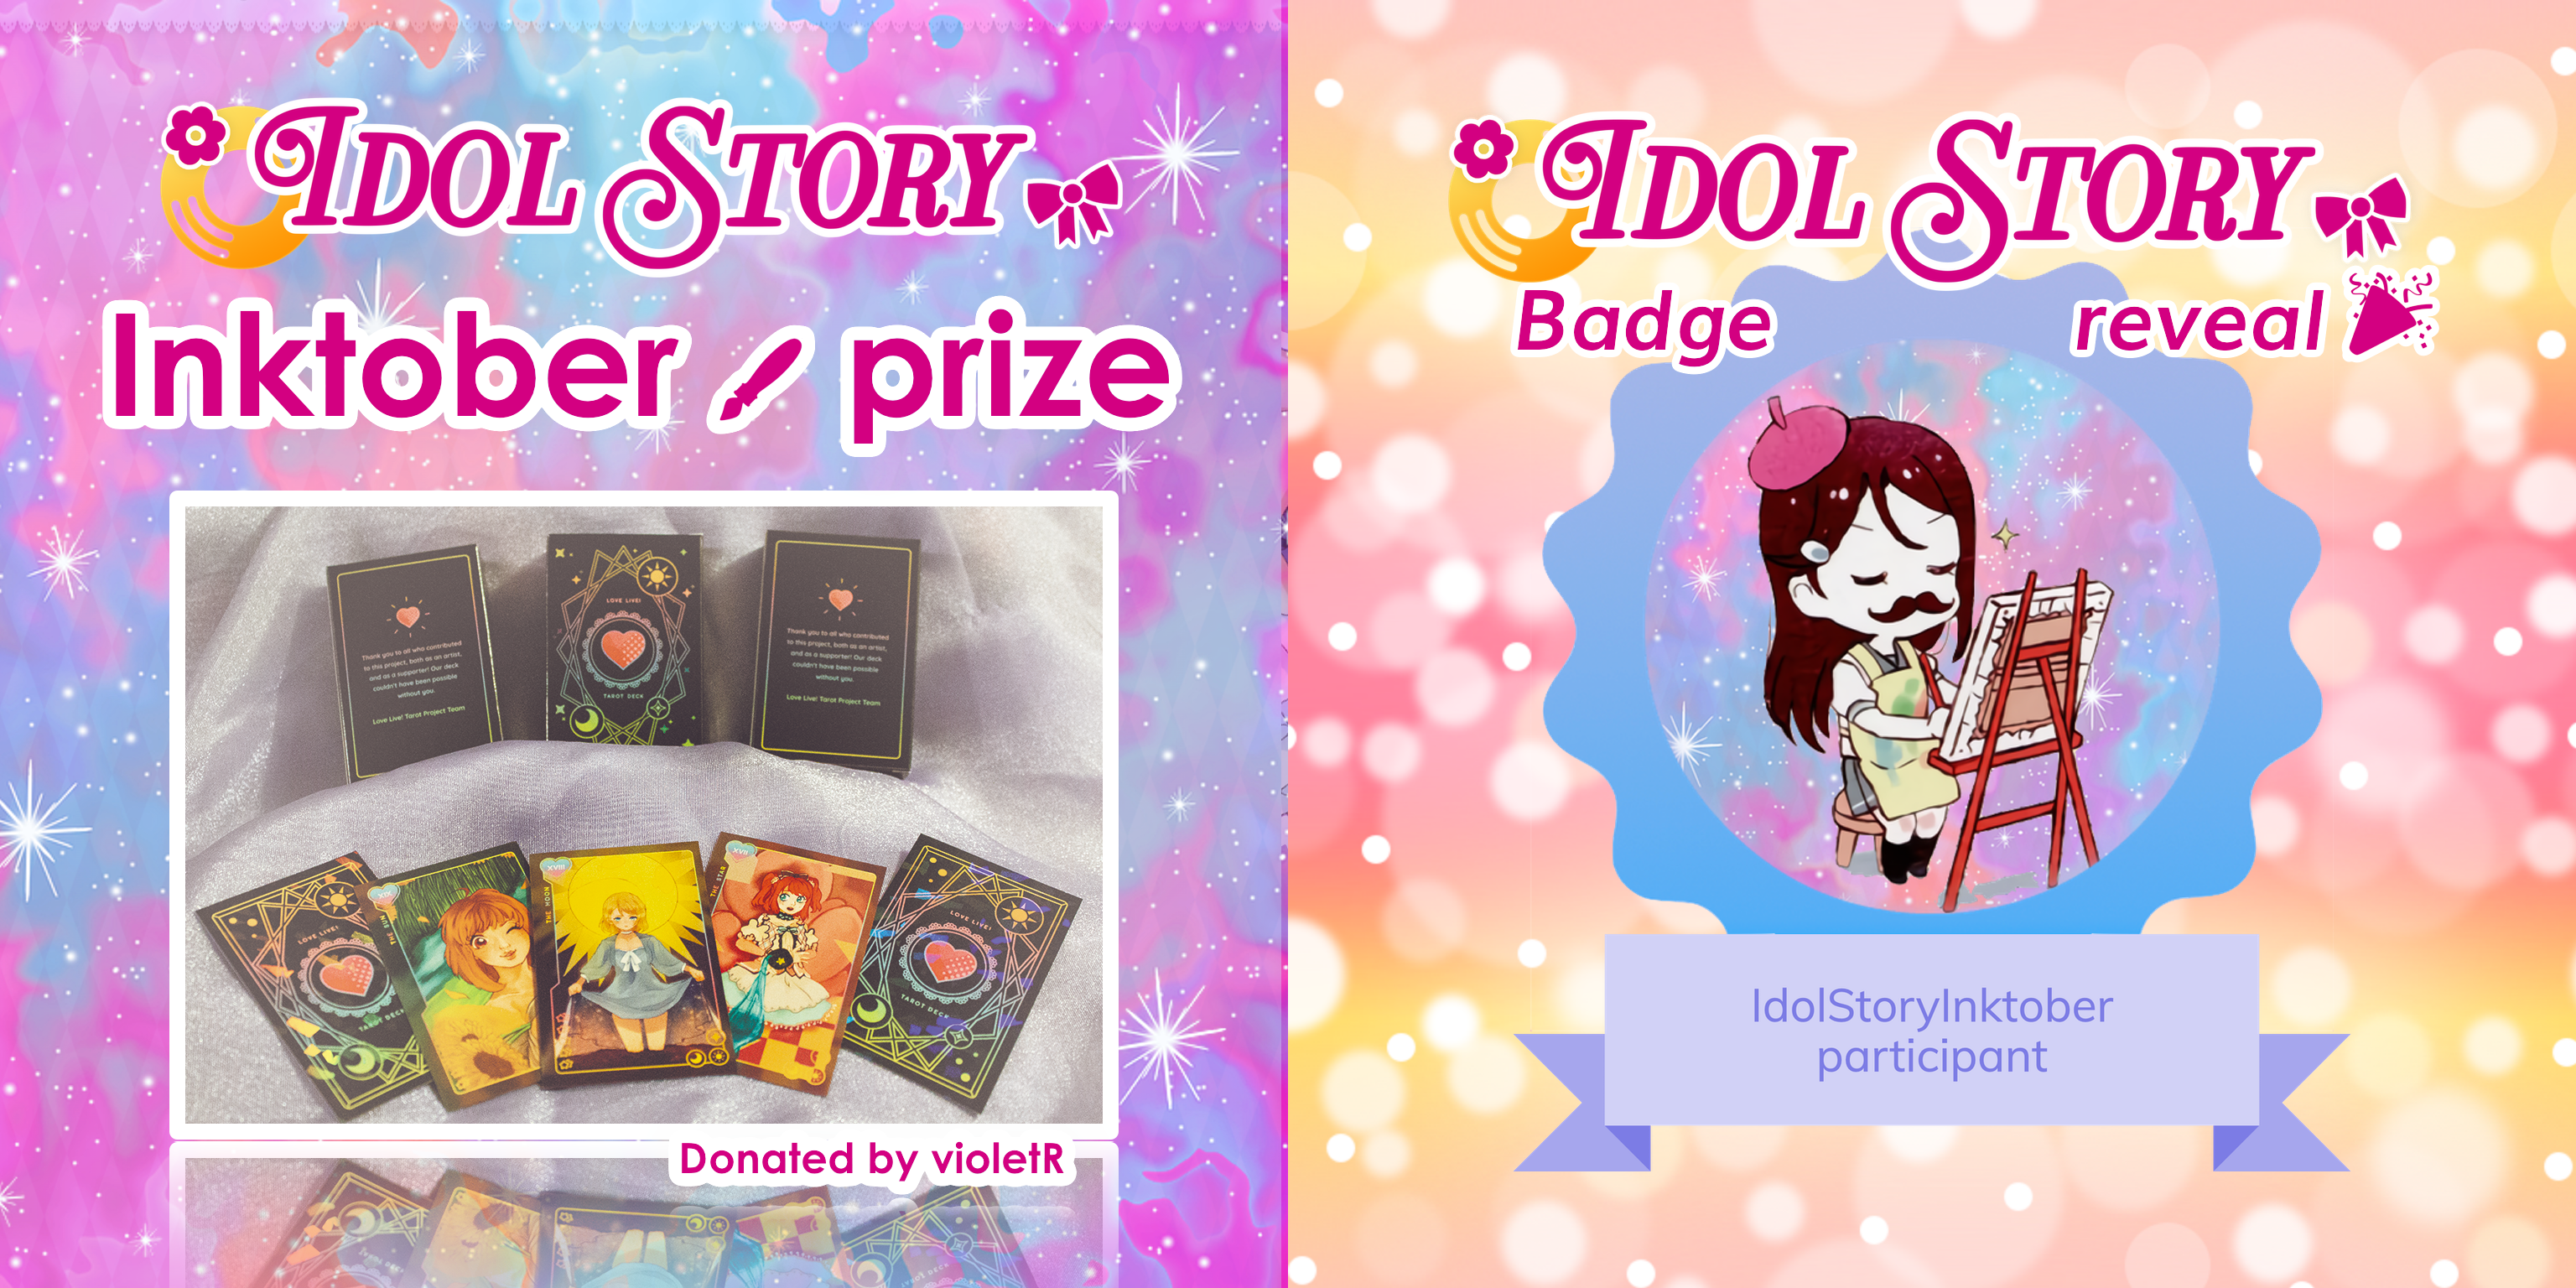 Prize & badge reveal